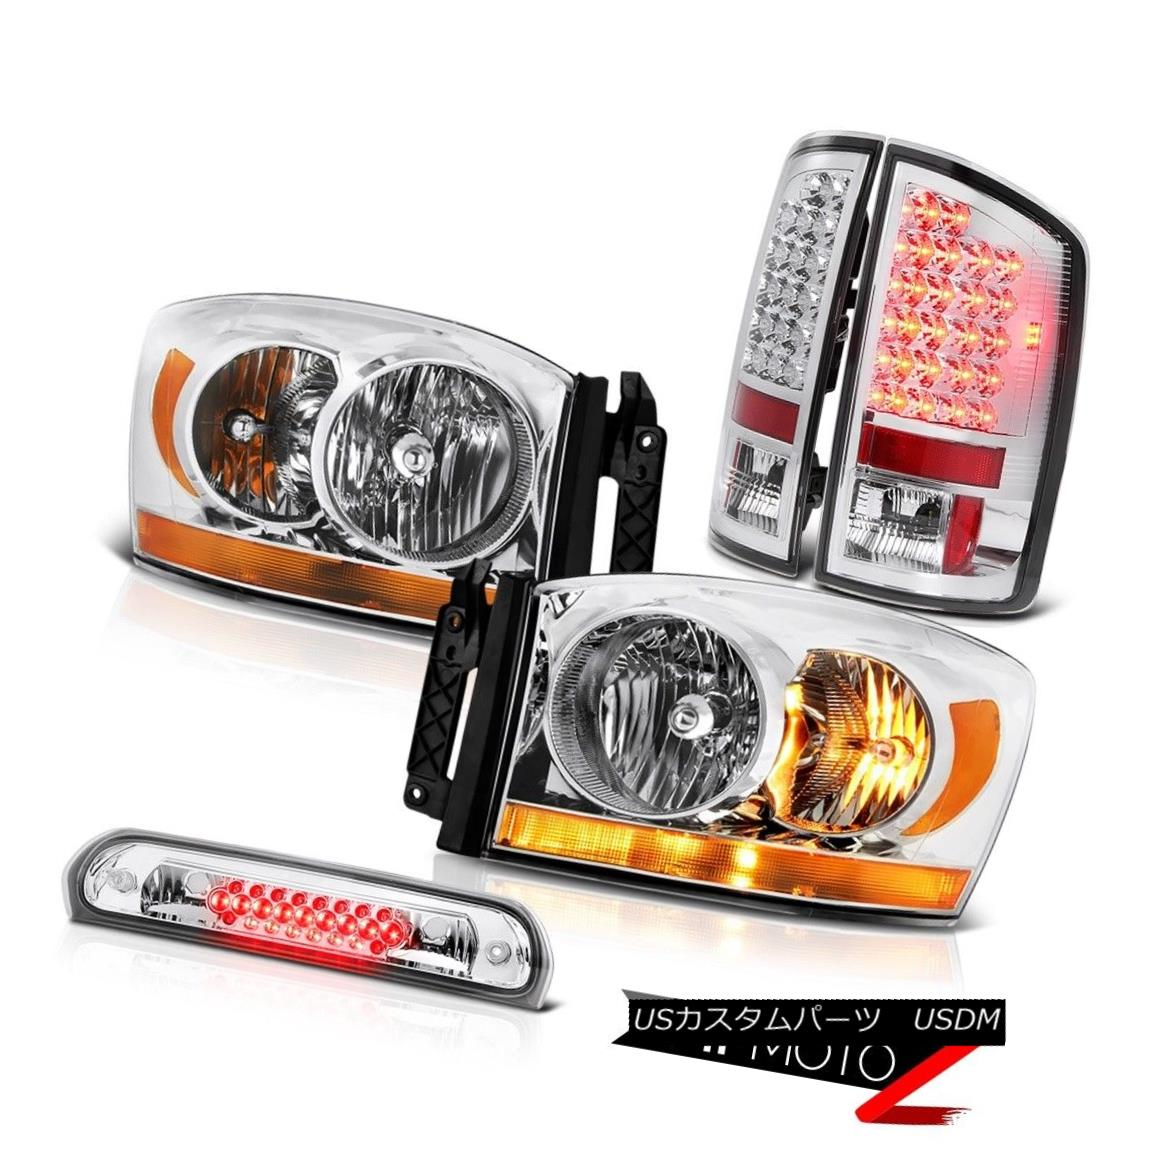 ヘッドライト 2006 Ram Slt Euro Chrome Headlights Roof Cab Light Taillamps SMD